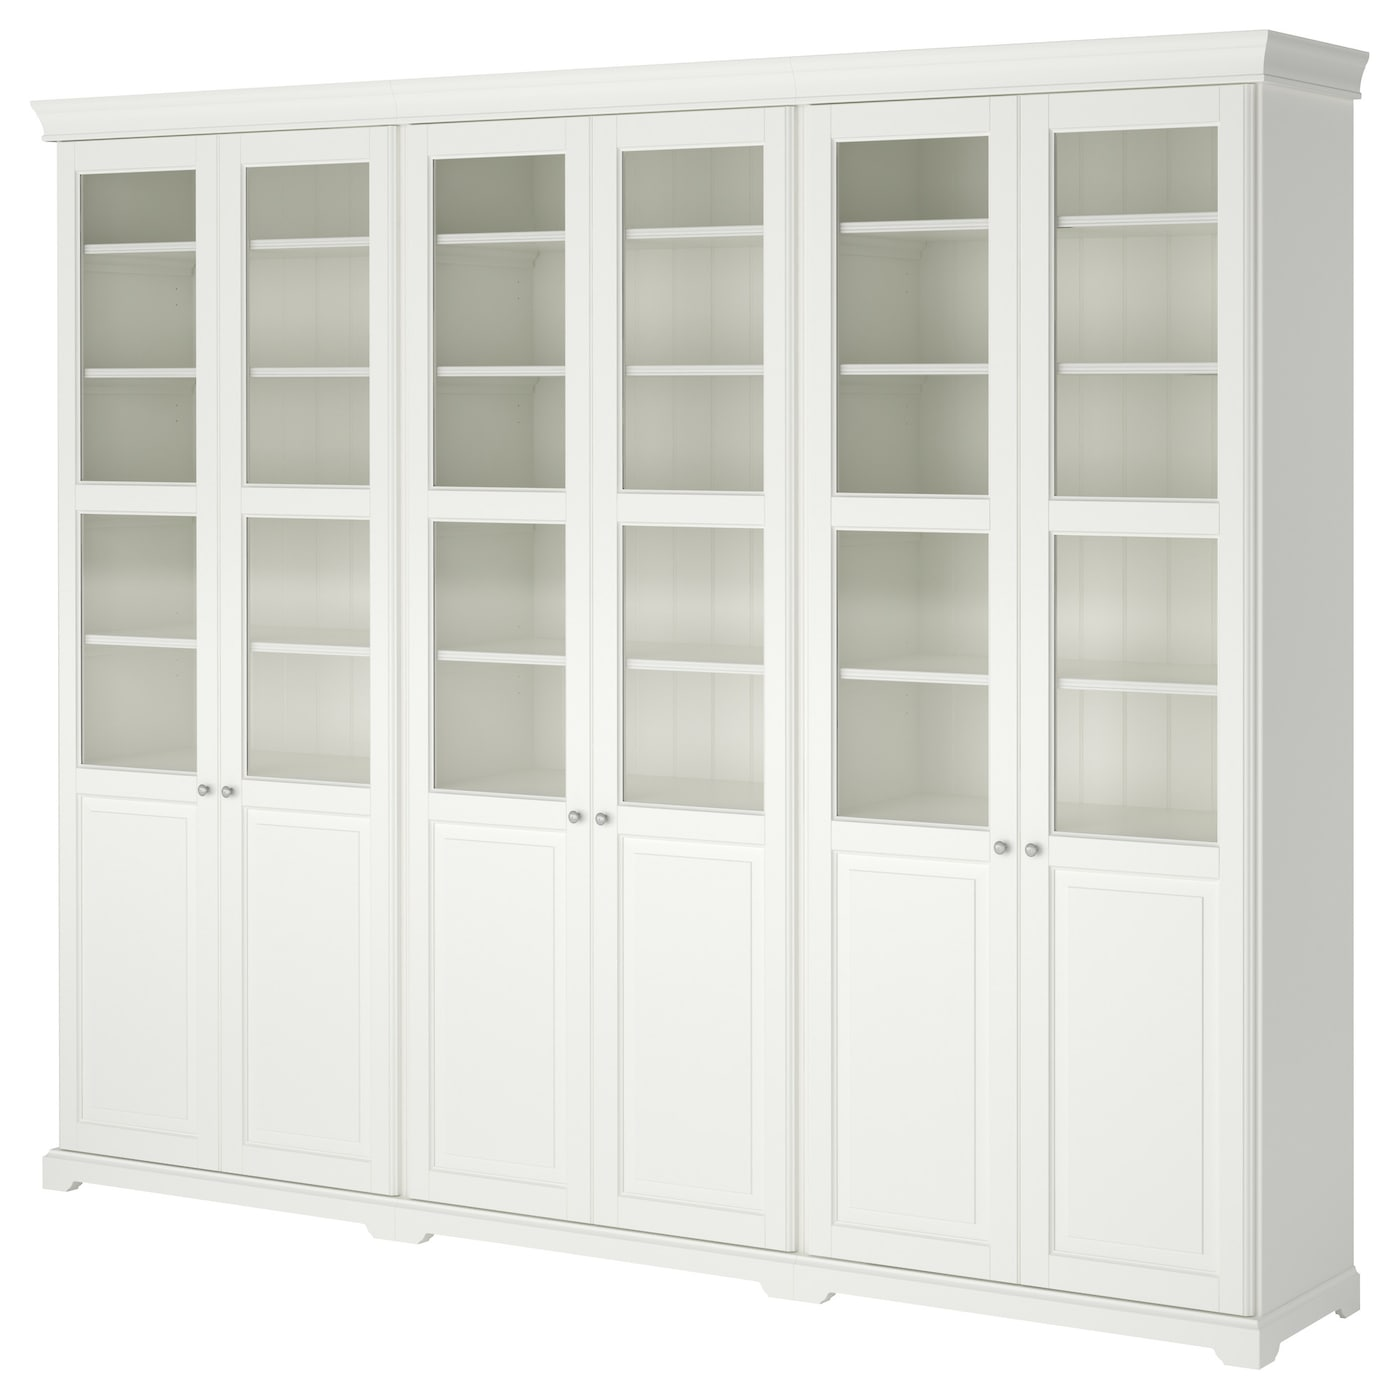 liatorp storage bination with doors white 276x214 cm ikea